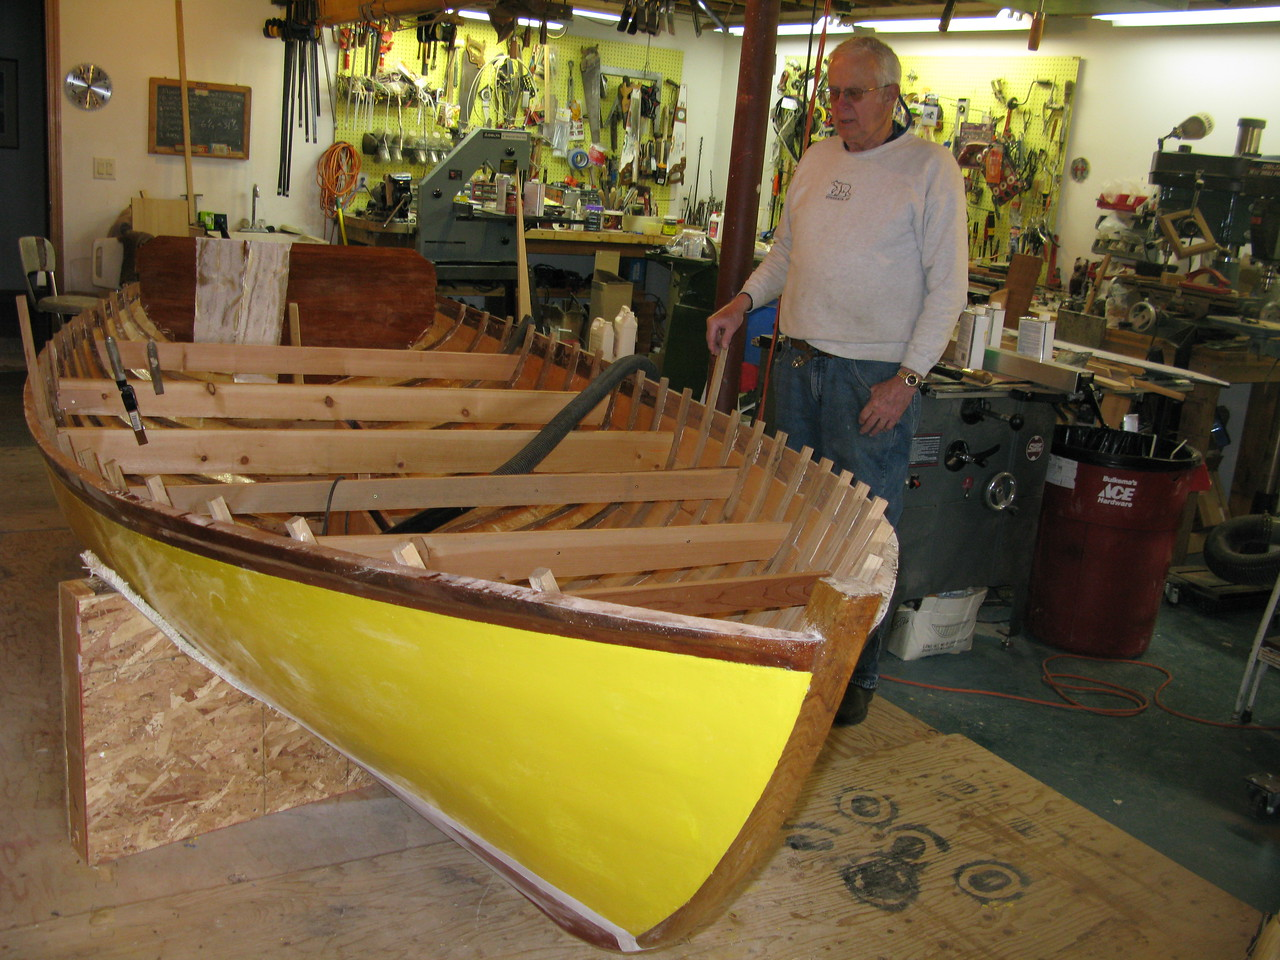 Dad and sail boat 4 years under construction, nearing completion.